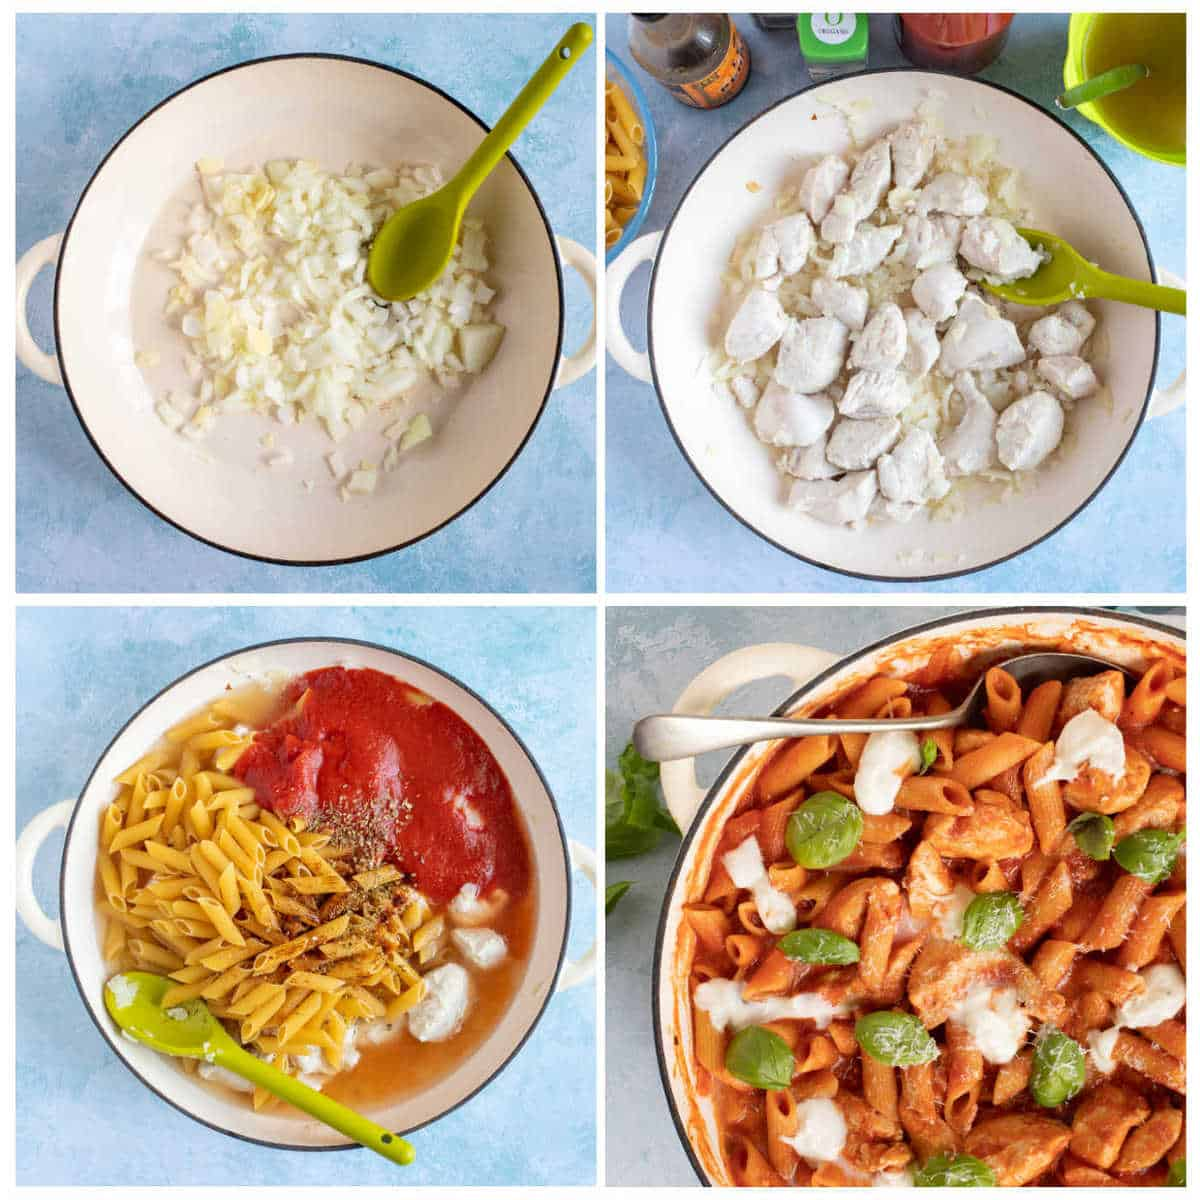 Step by step photo instructions for making chicken penne arrabbiata.